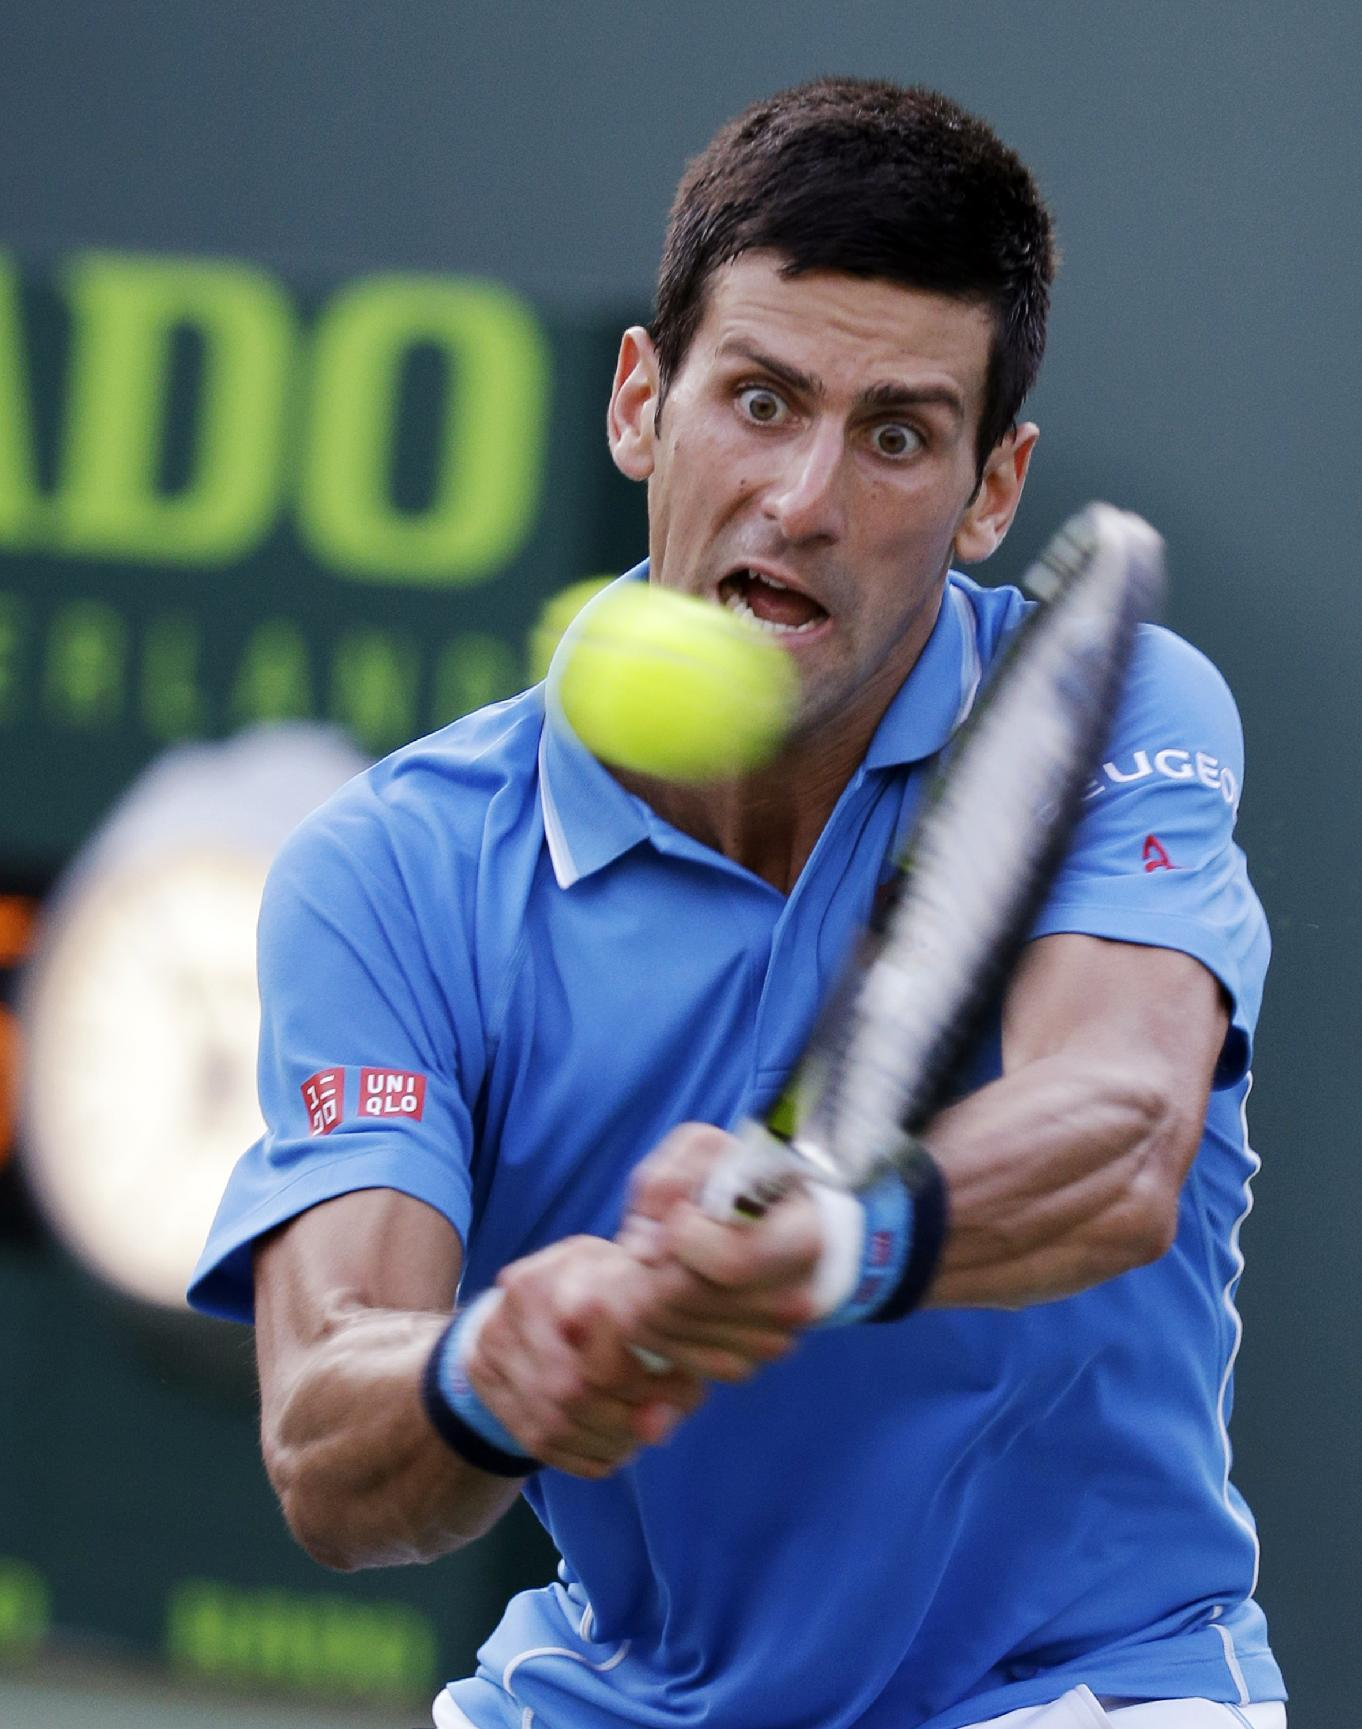 Djokovic defeats Dolgopolov in Miami; Venus Williams loses